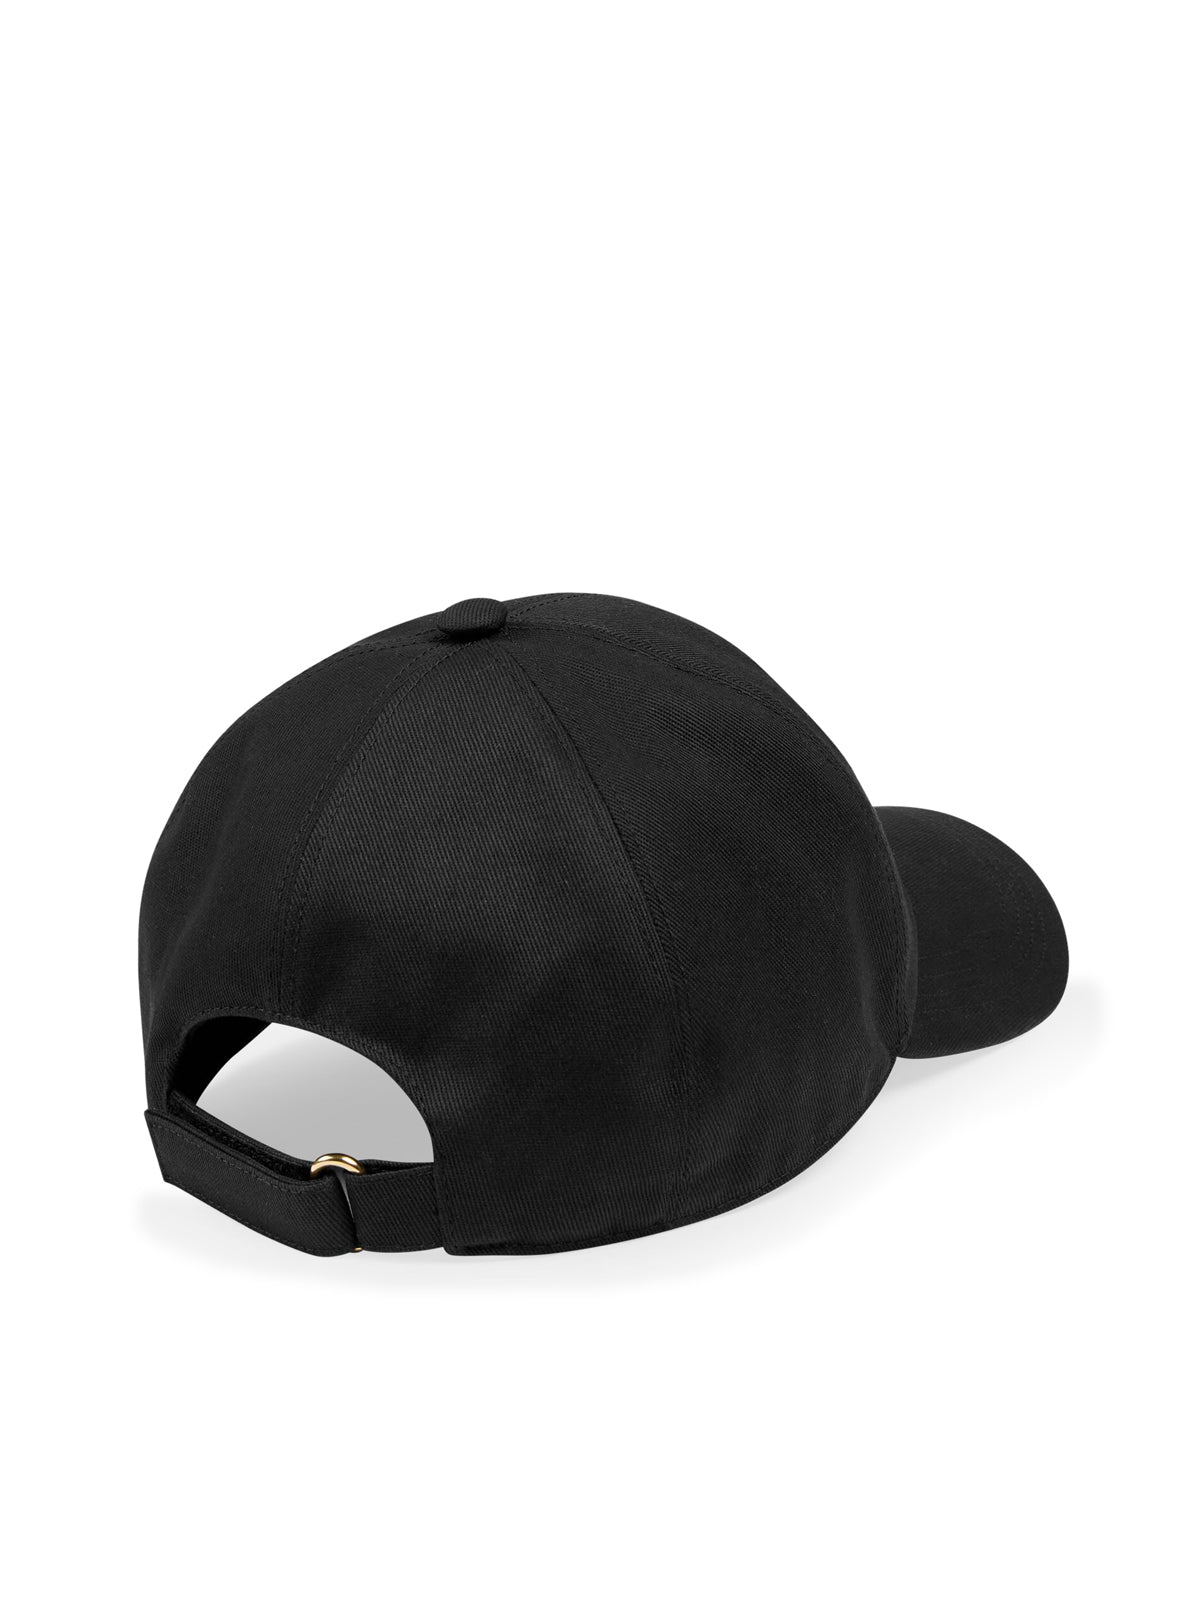 Baseball cap with application